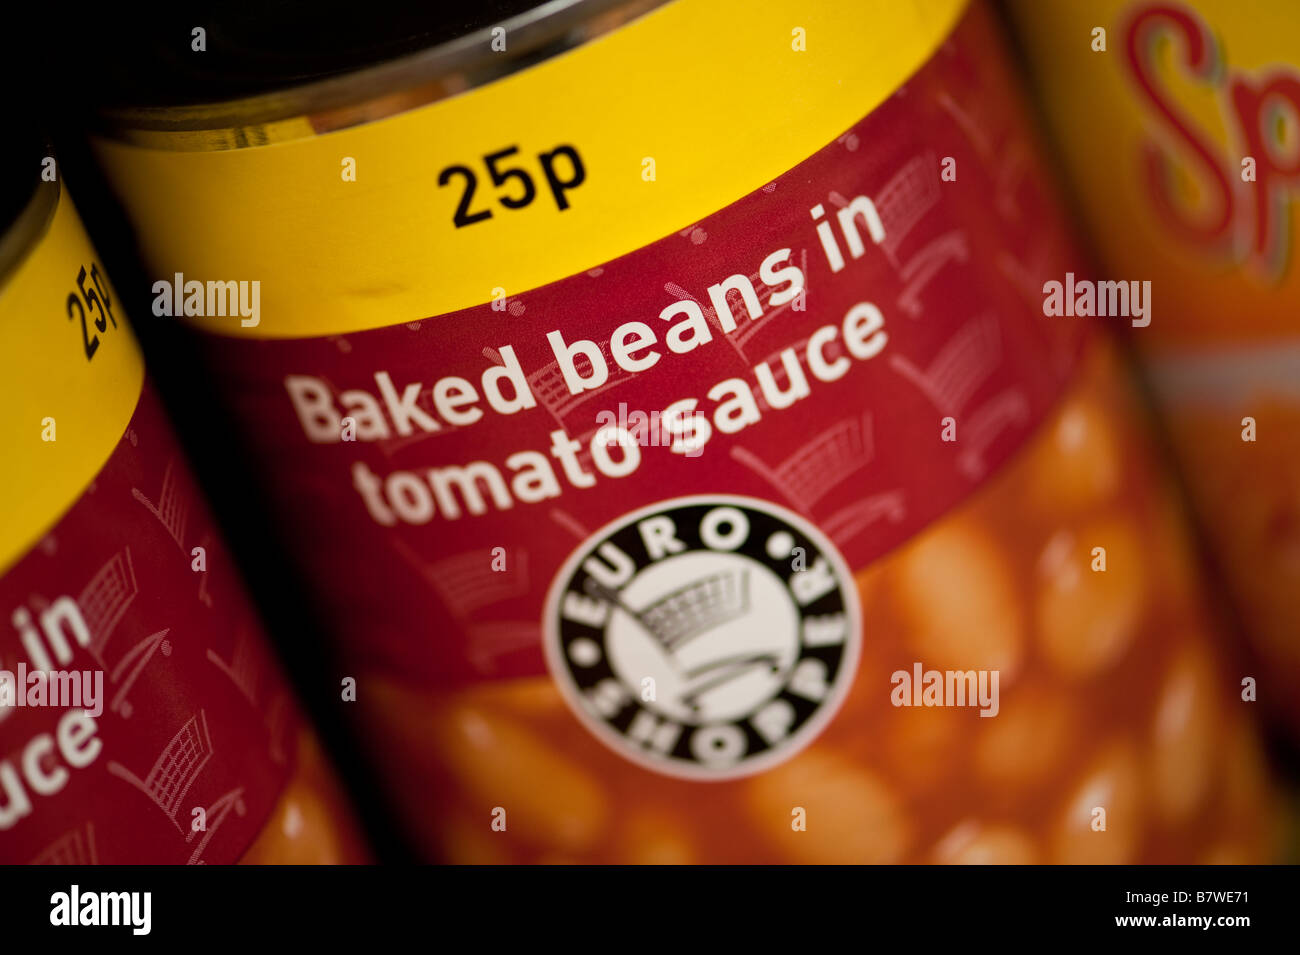 Tin cans of Own brand Euro Shopper cheap discount generic food on sale for 25p in a corner shop UK - Stock Image